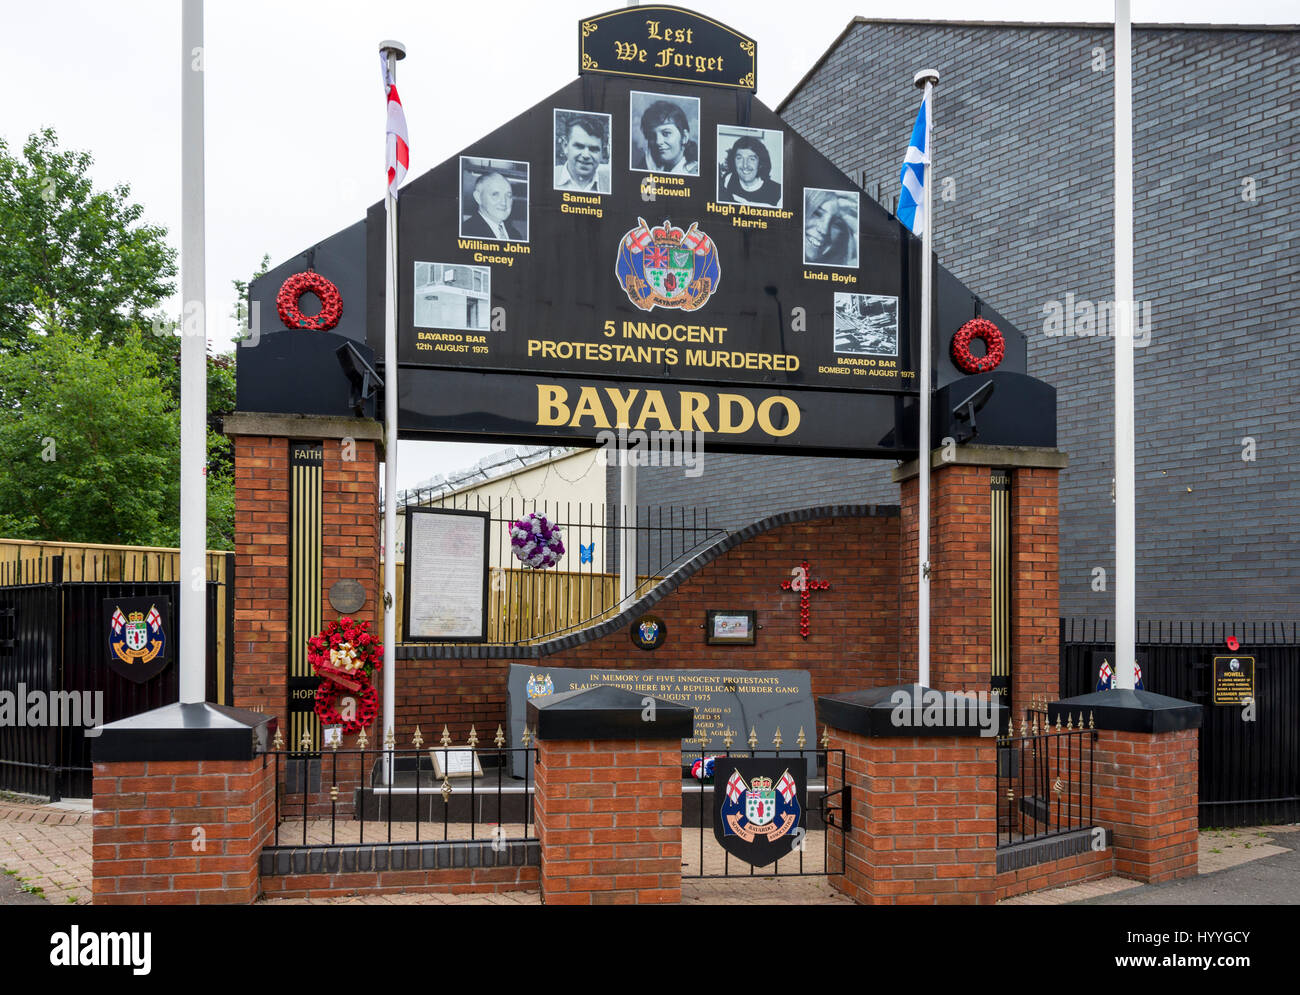 Memorial to the victims, on the site of the bombed Bayardo Bar, Shankill Road, Belfast, County Antrim, Northern - Stock Image